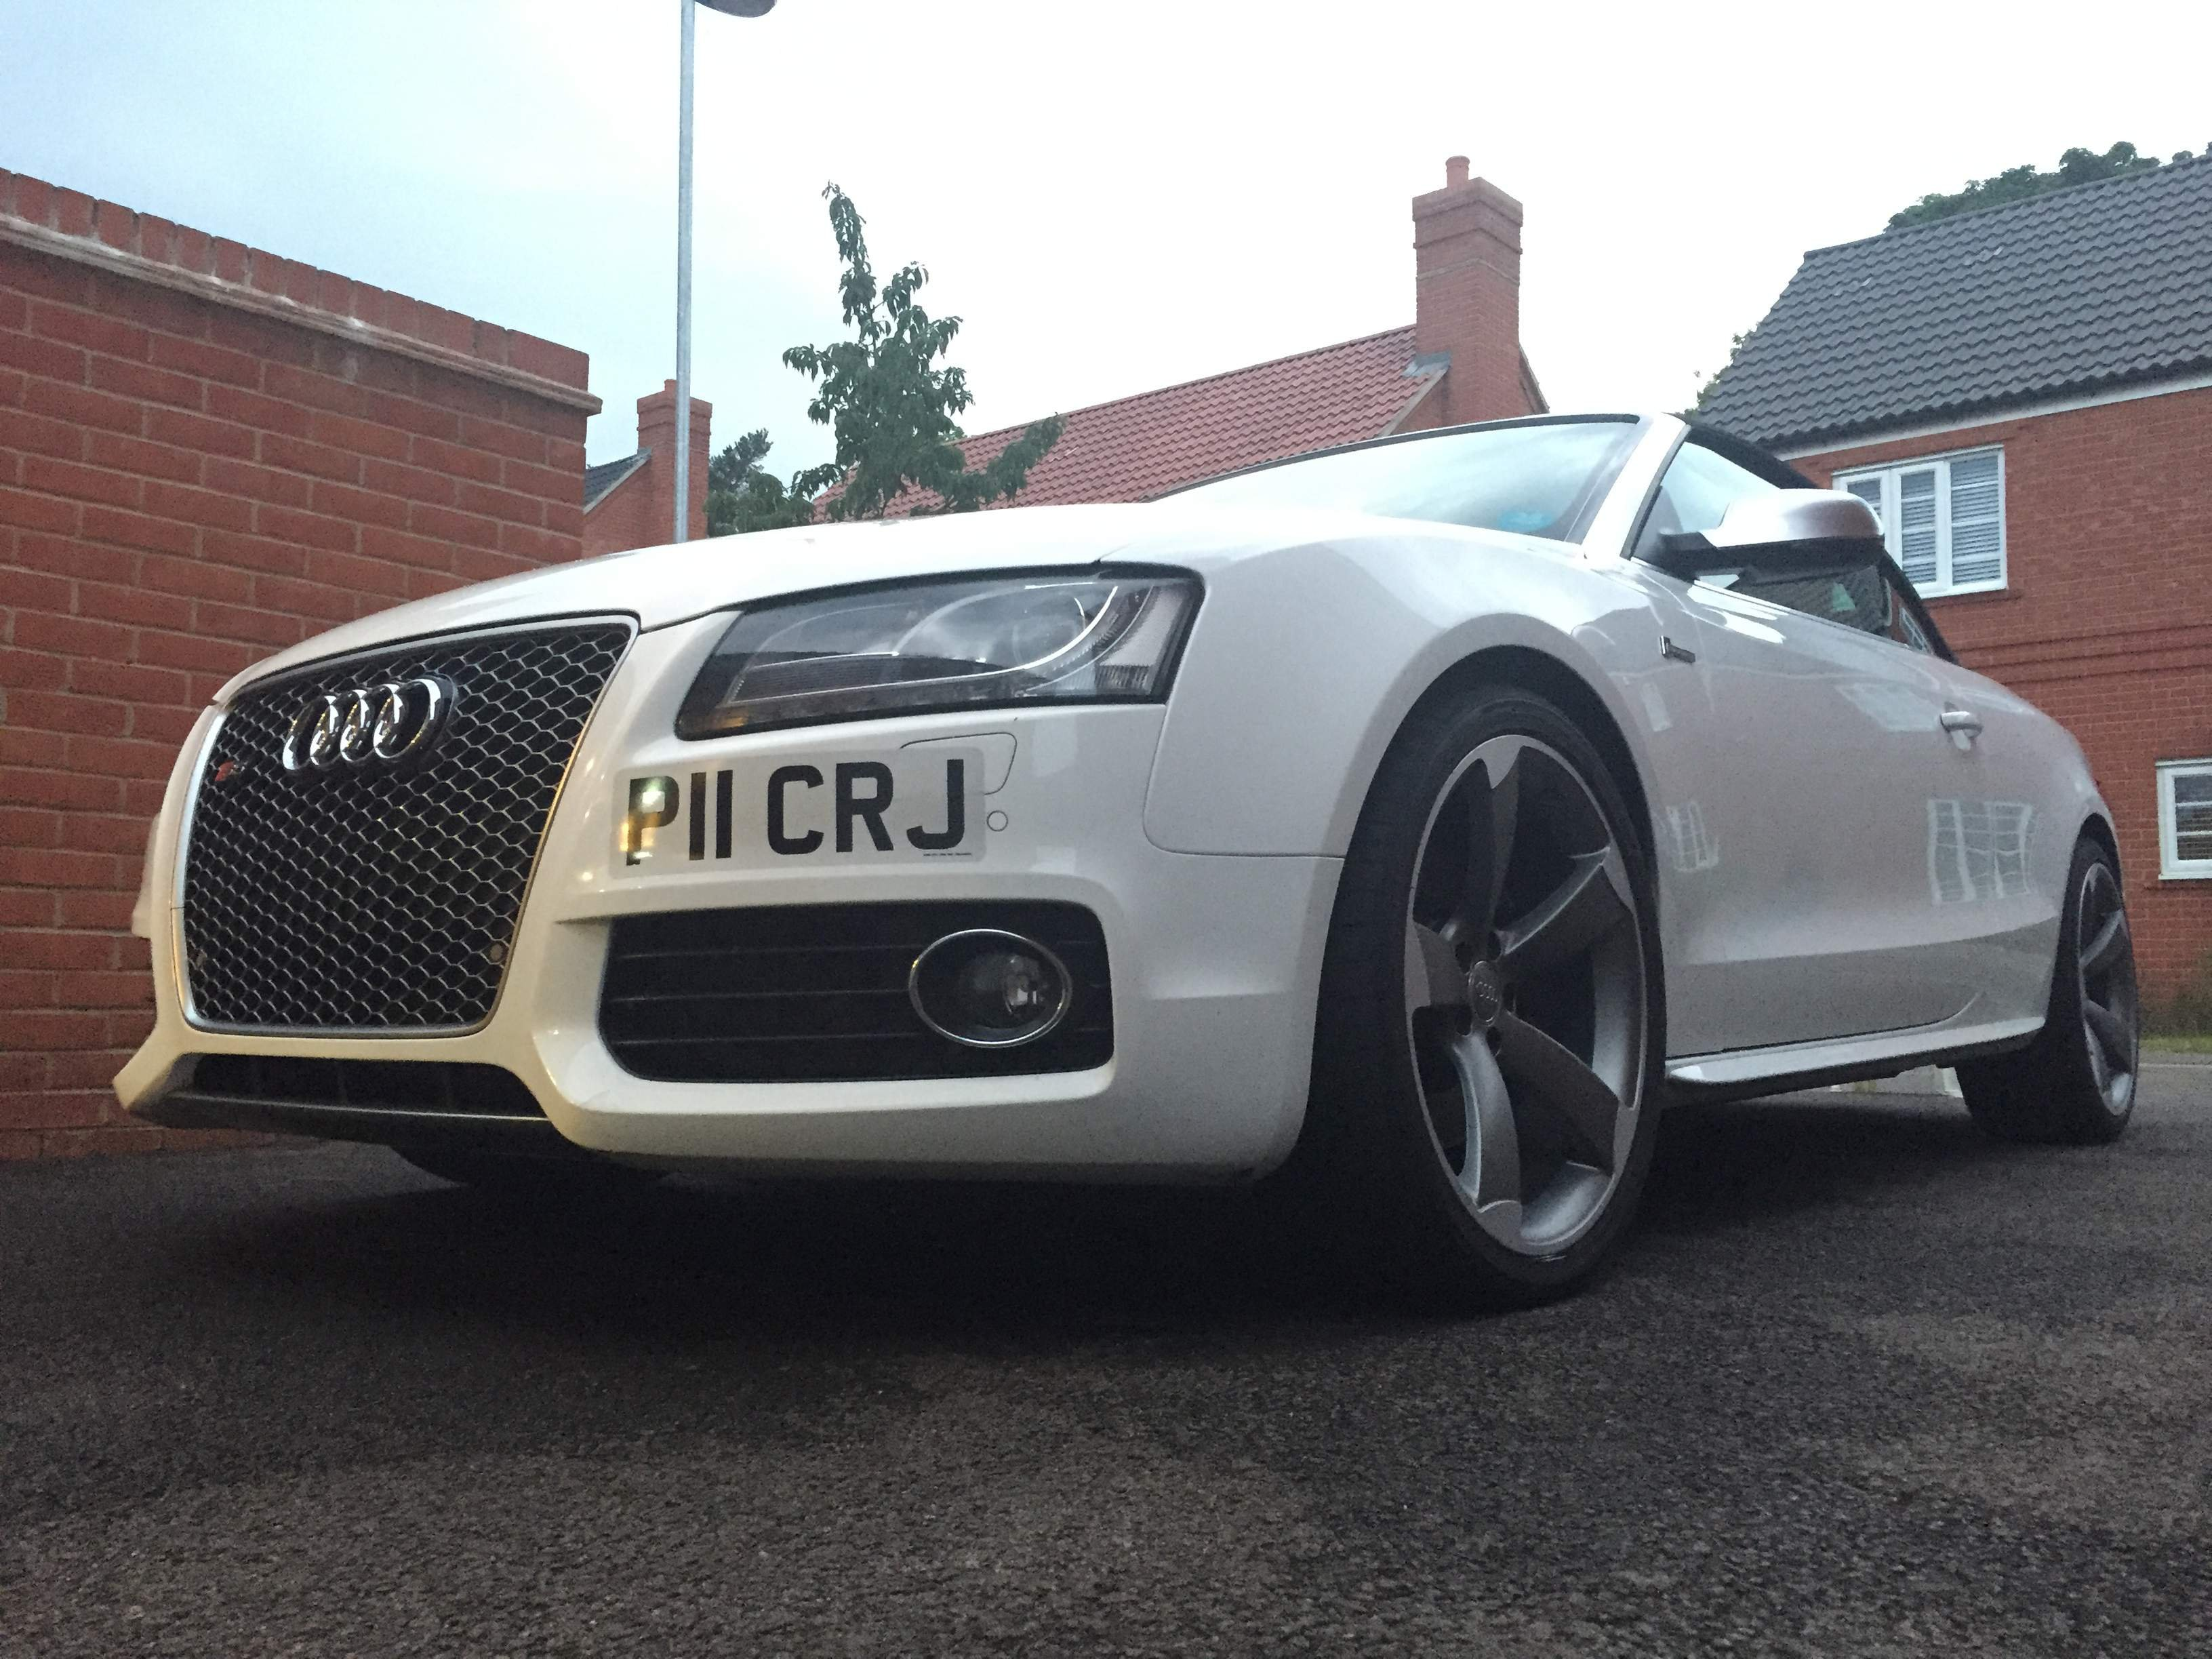 prestige current selling is located car audi sale my mileage showthread asking for forum img